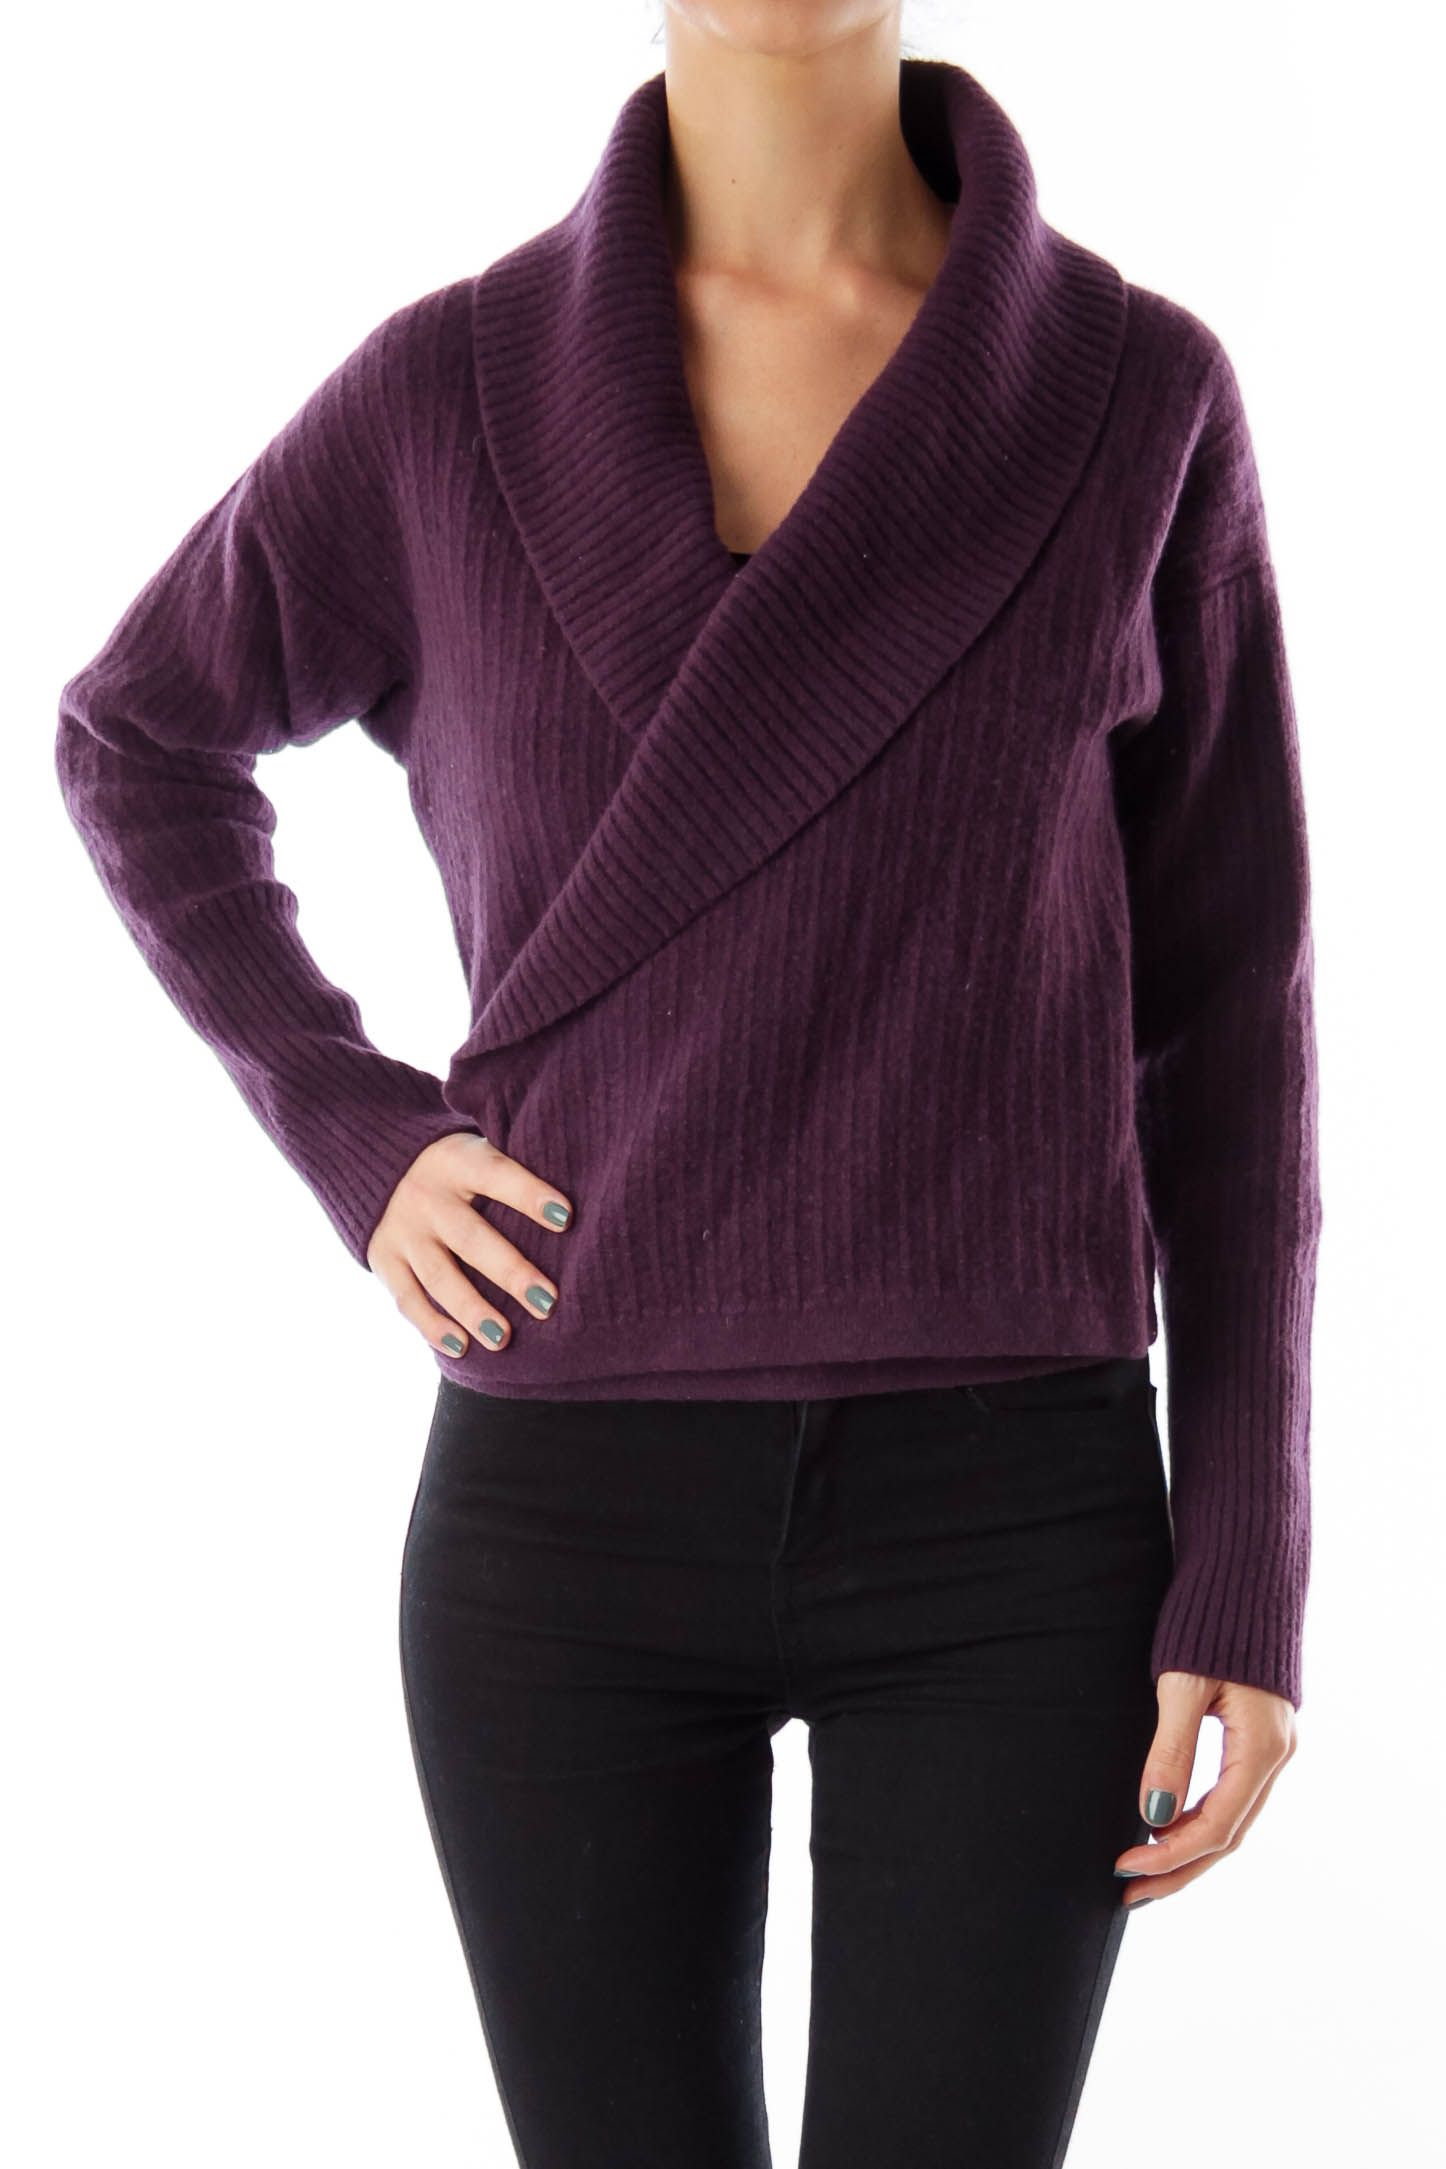 Like this DVF sweater? Shop this without using money! Trade. Shop ...